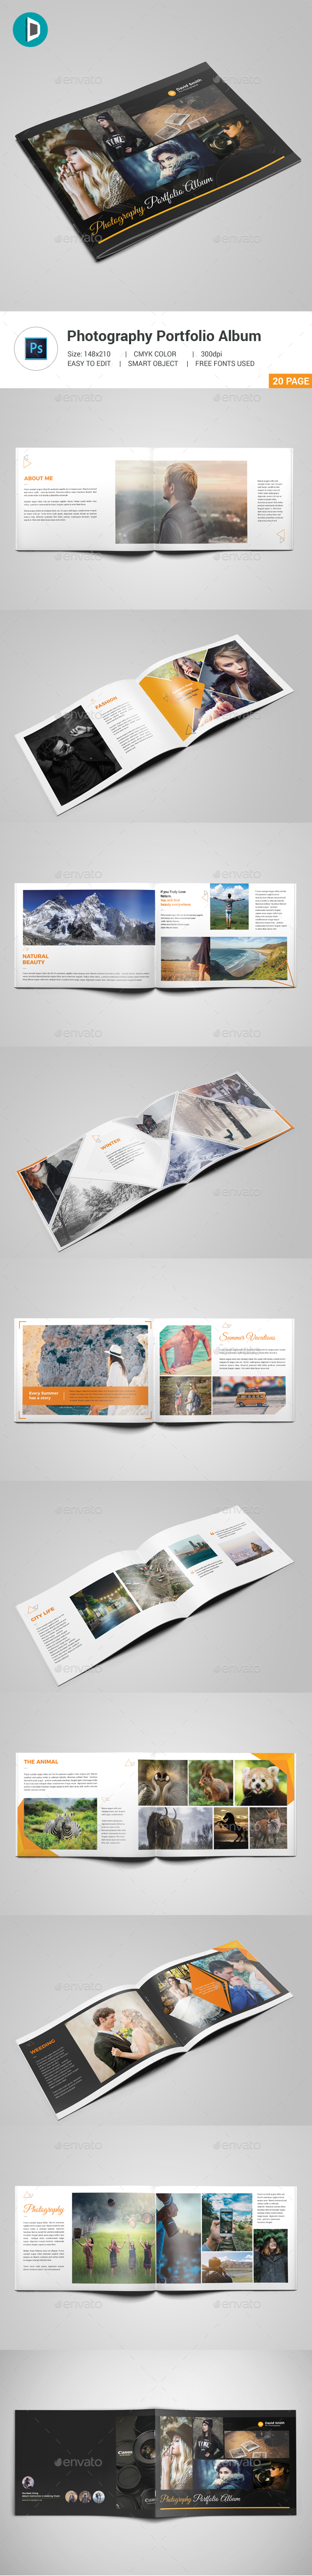 Photography Portfolio Album - Photo Albums Print Templates